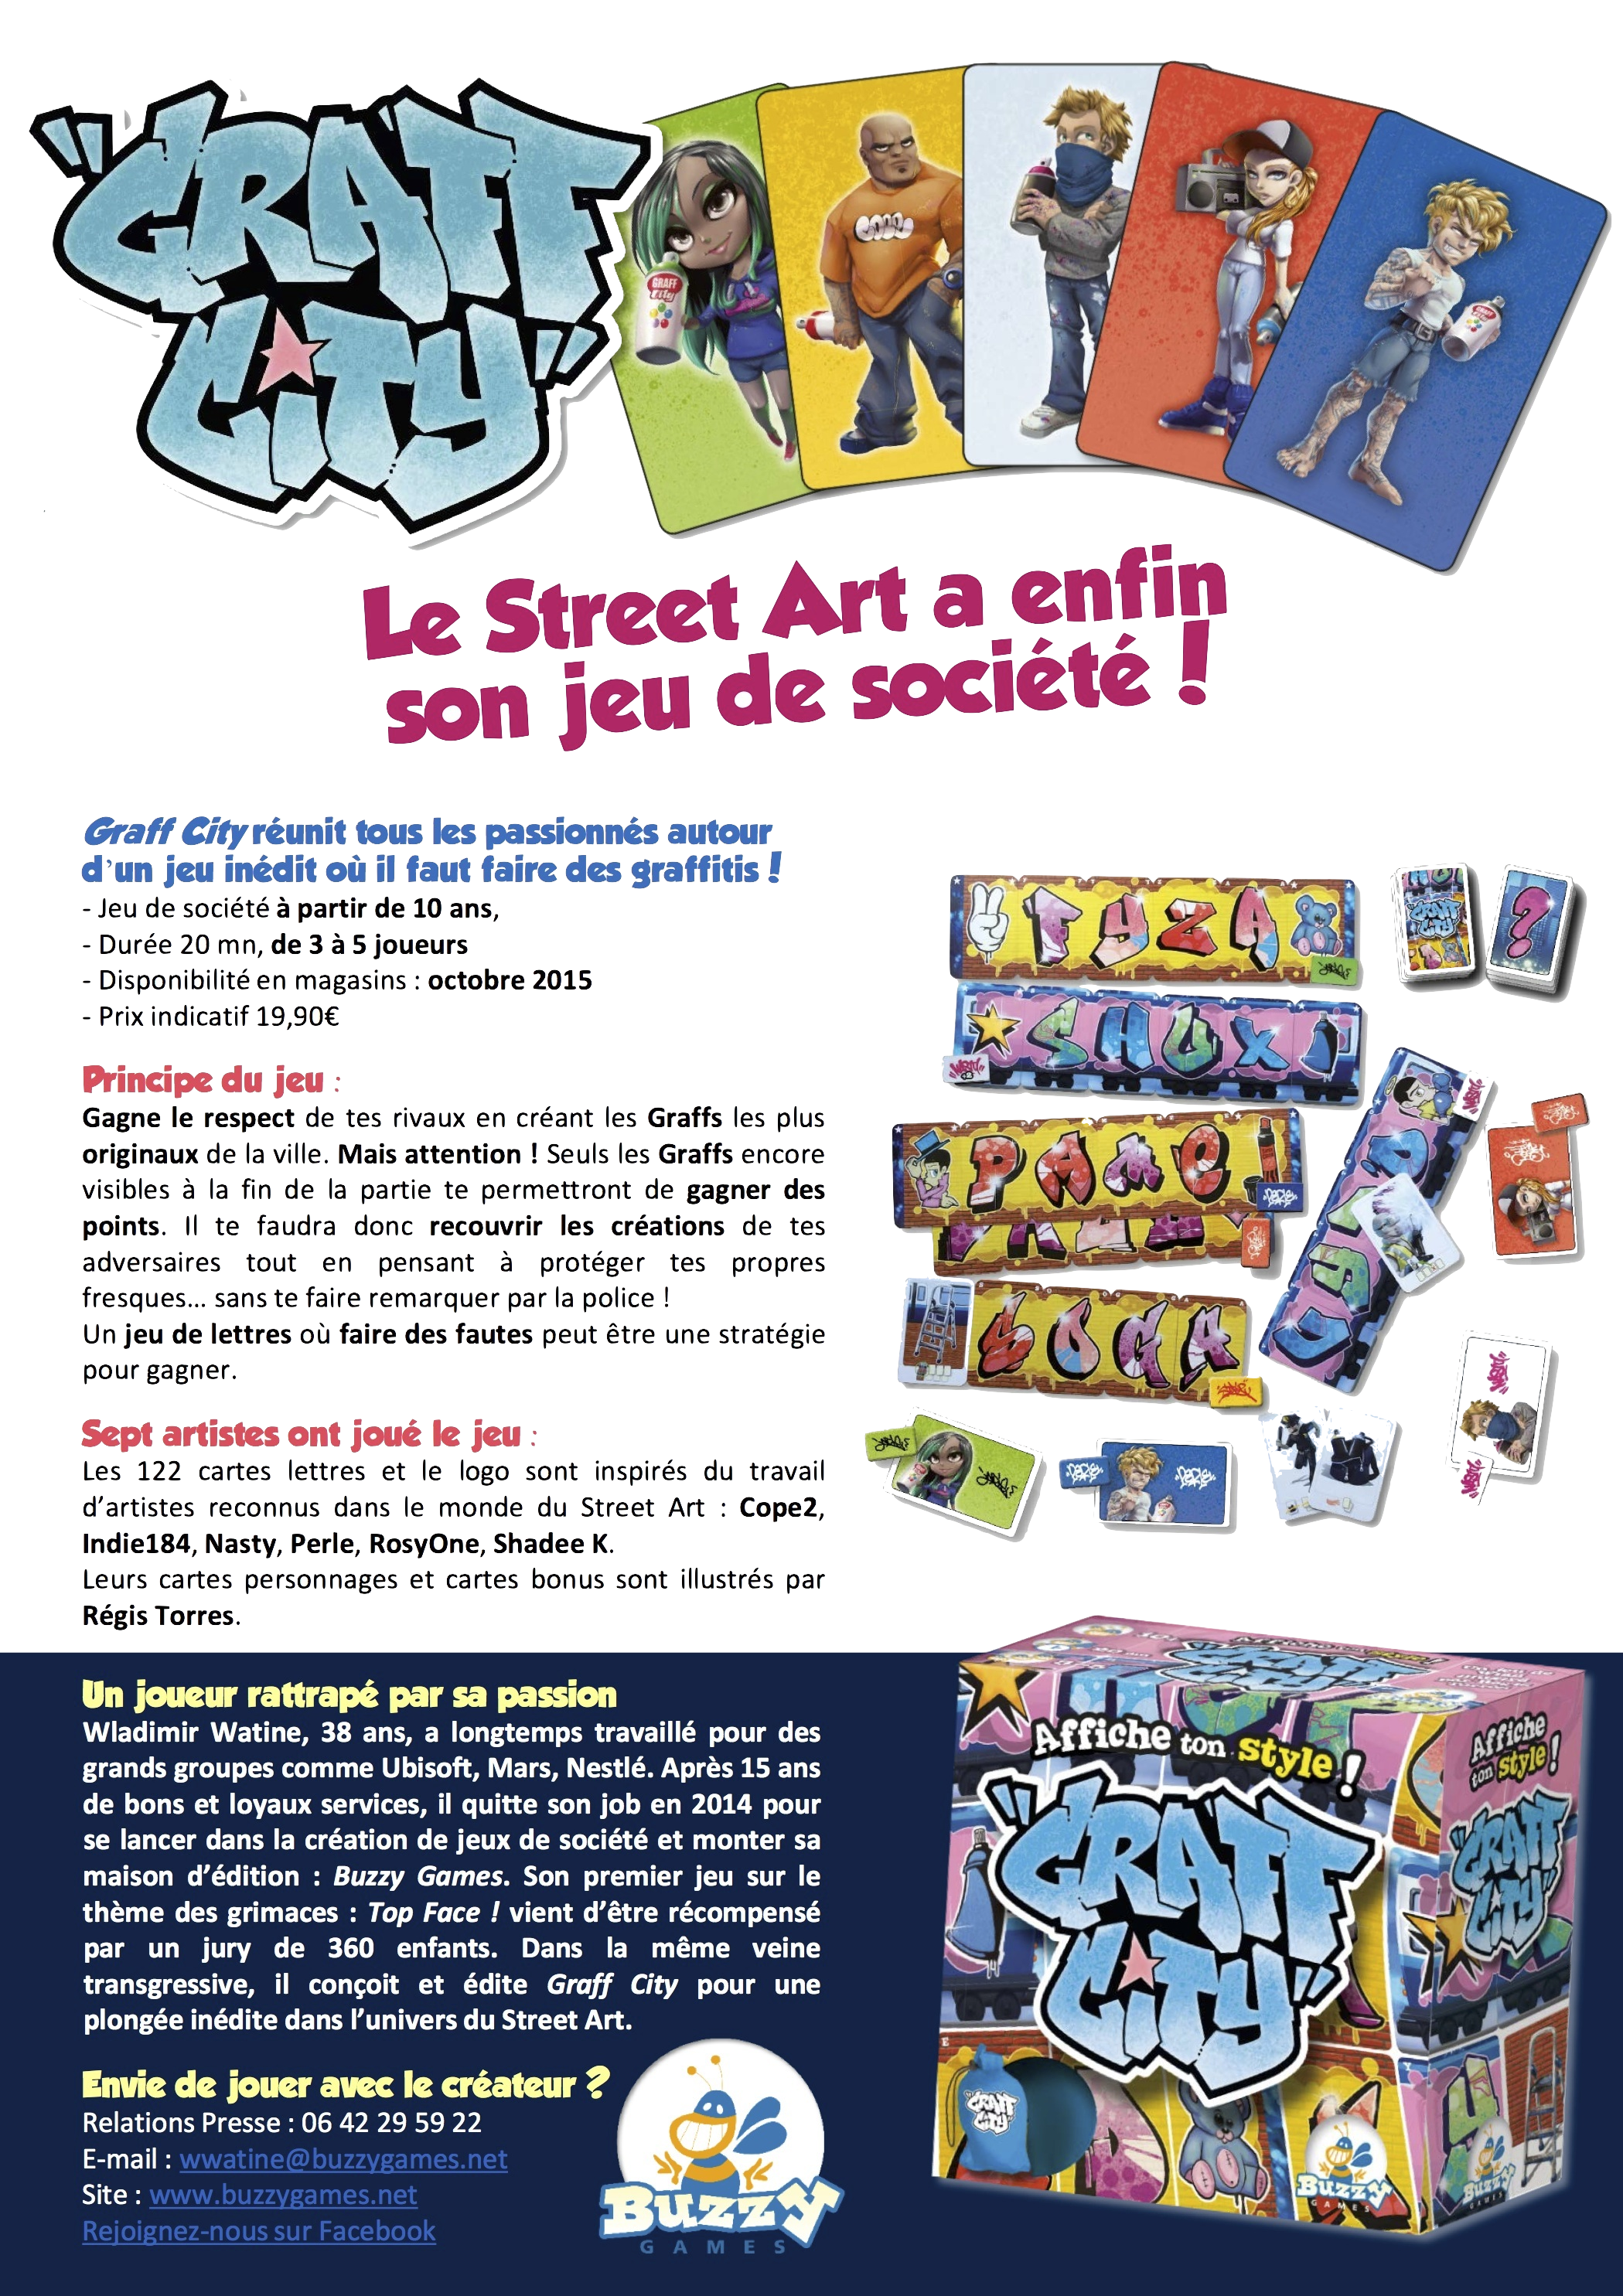 Relativ Le jeu graff city est disponible ! | Paris Tonkar magazine OX58